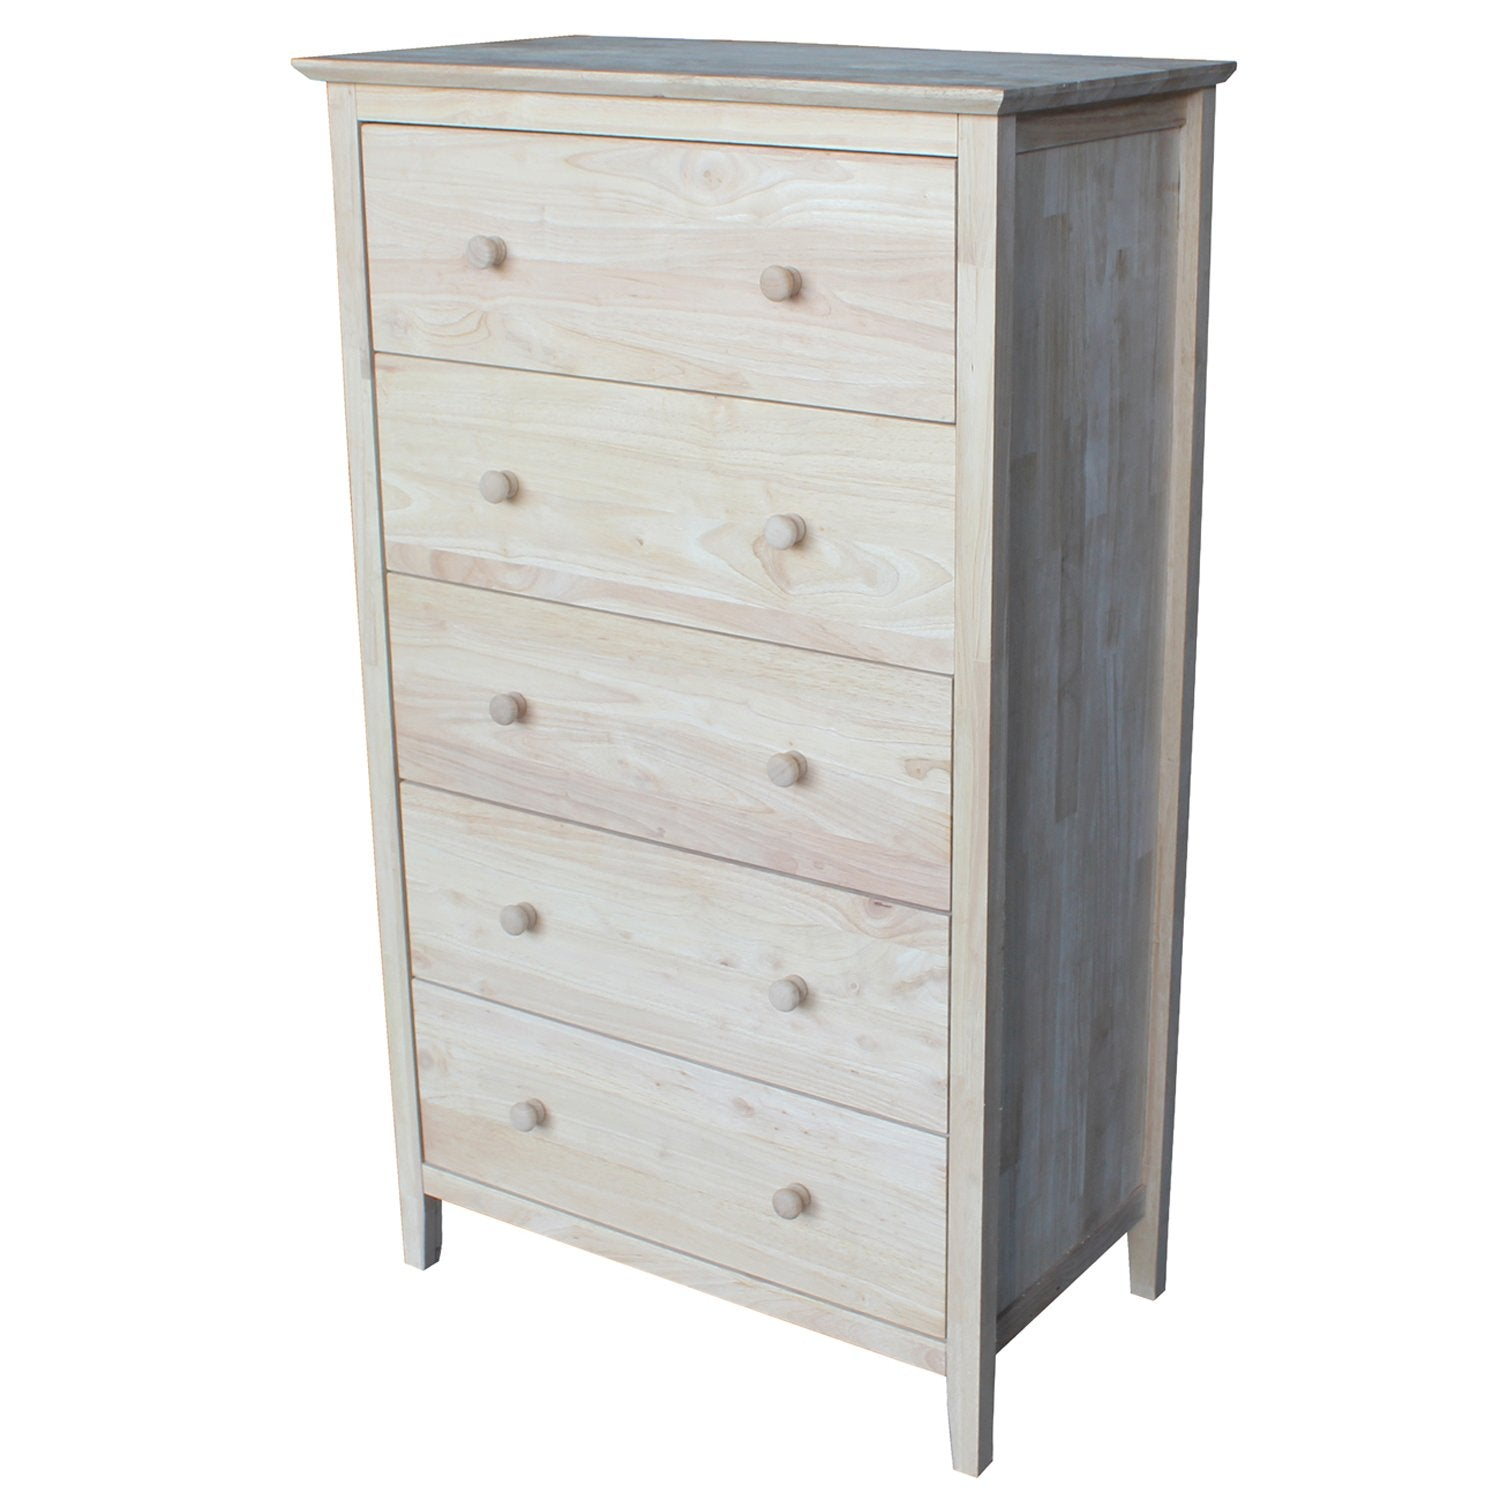 Chest with 5 Drawers, Unfinished